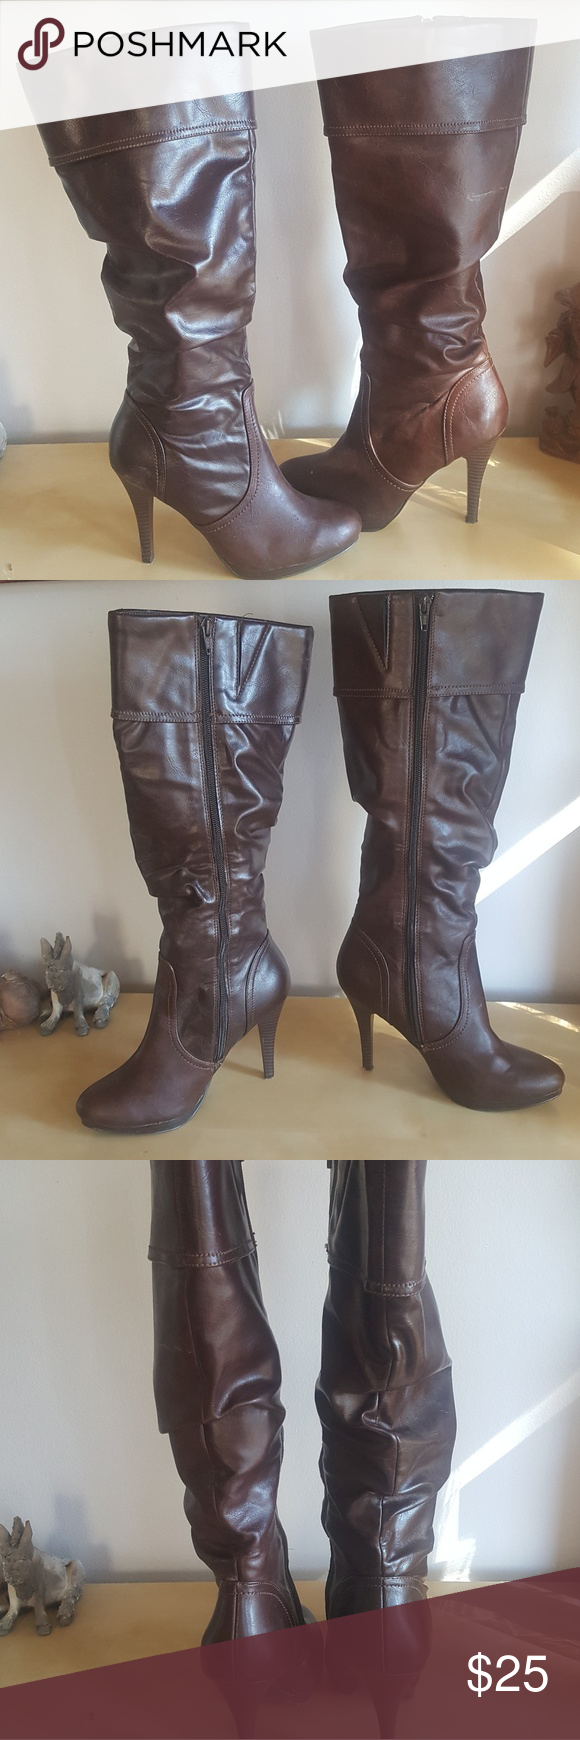 f68381392352d Brown high heeled boots Cute high heel brown boots. Bought from JCPenney.  Worthington Shoes Heeled Boots